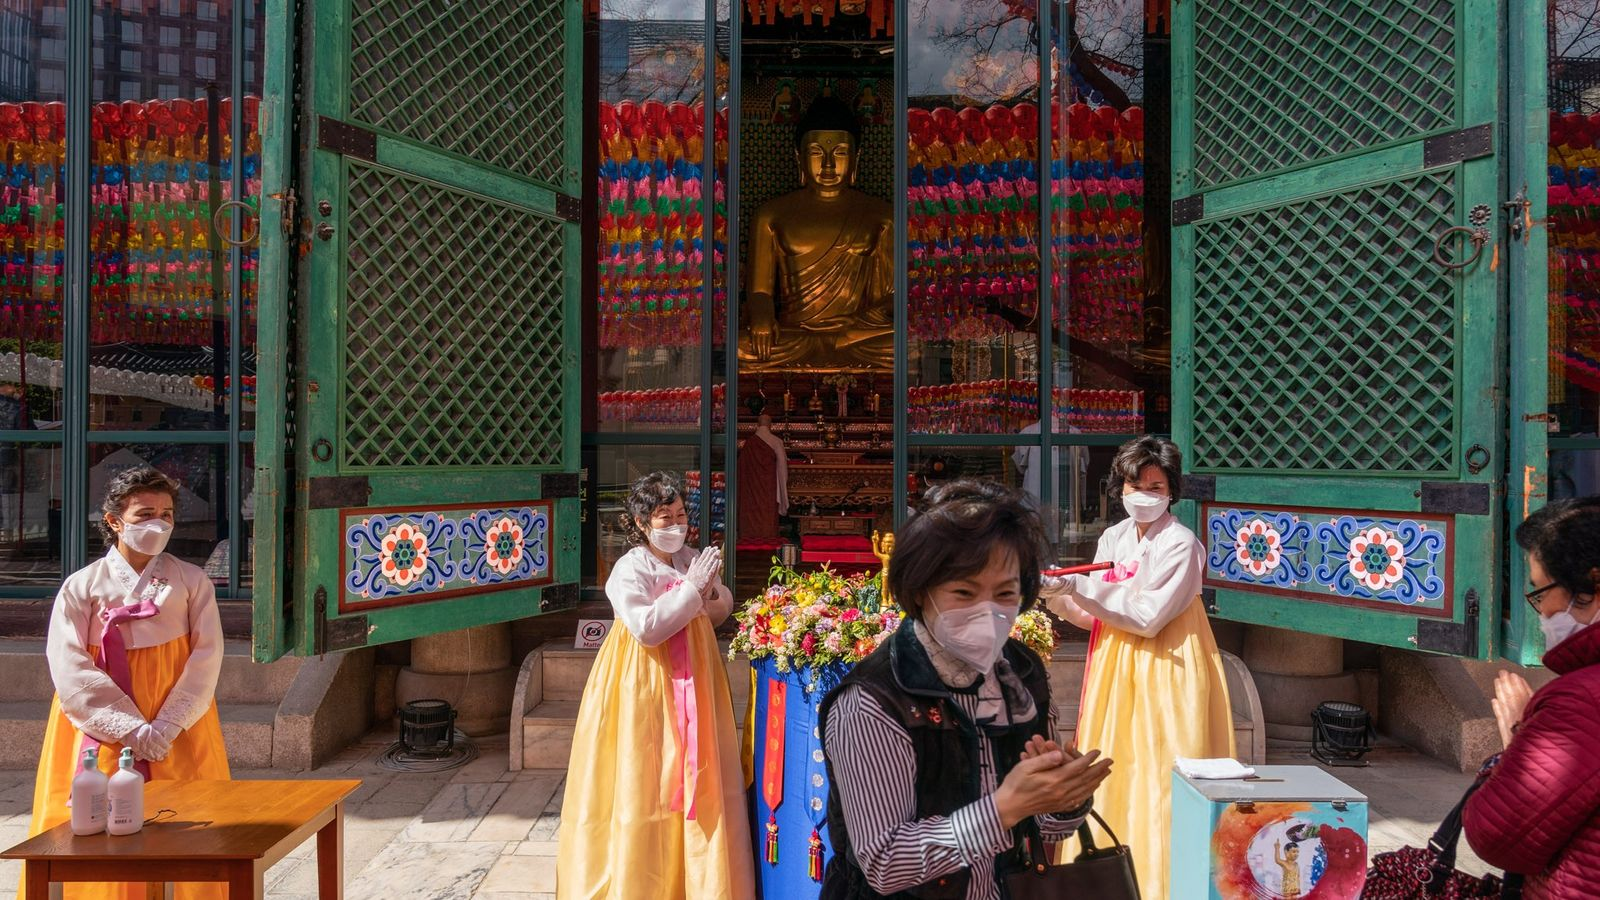 At the peak of South Korea's COVID-19 outbreak, the government advised against all religious gatherings. As ...